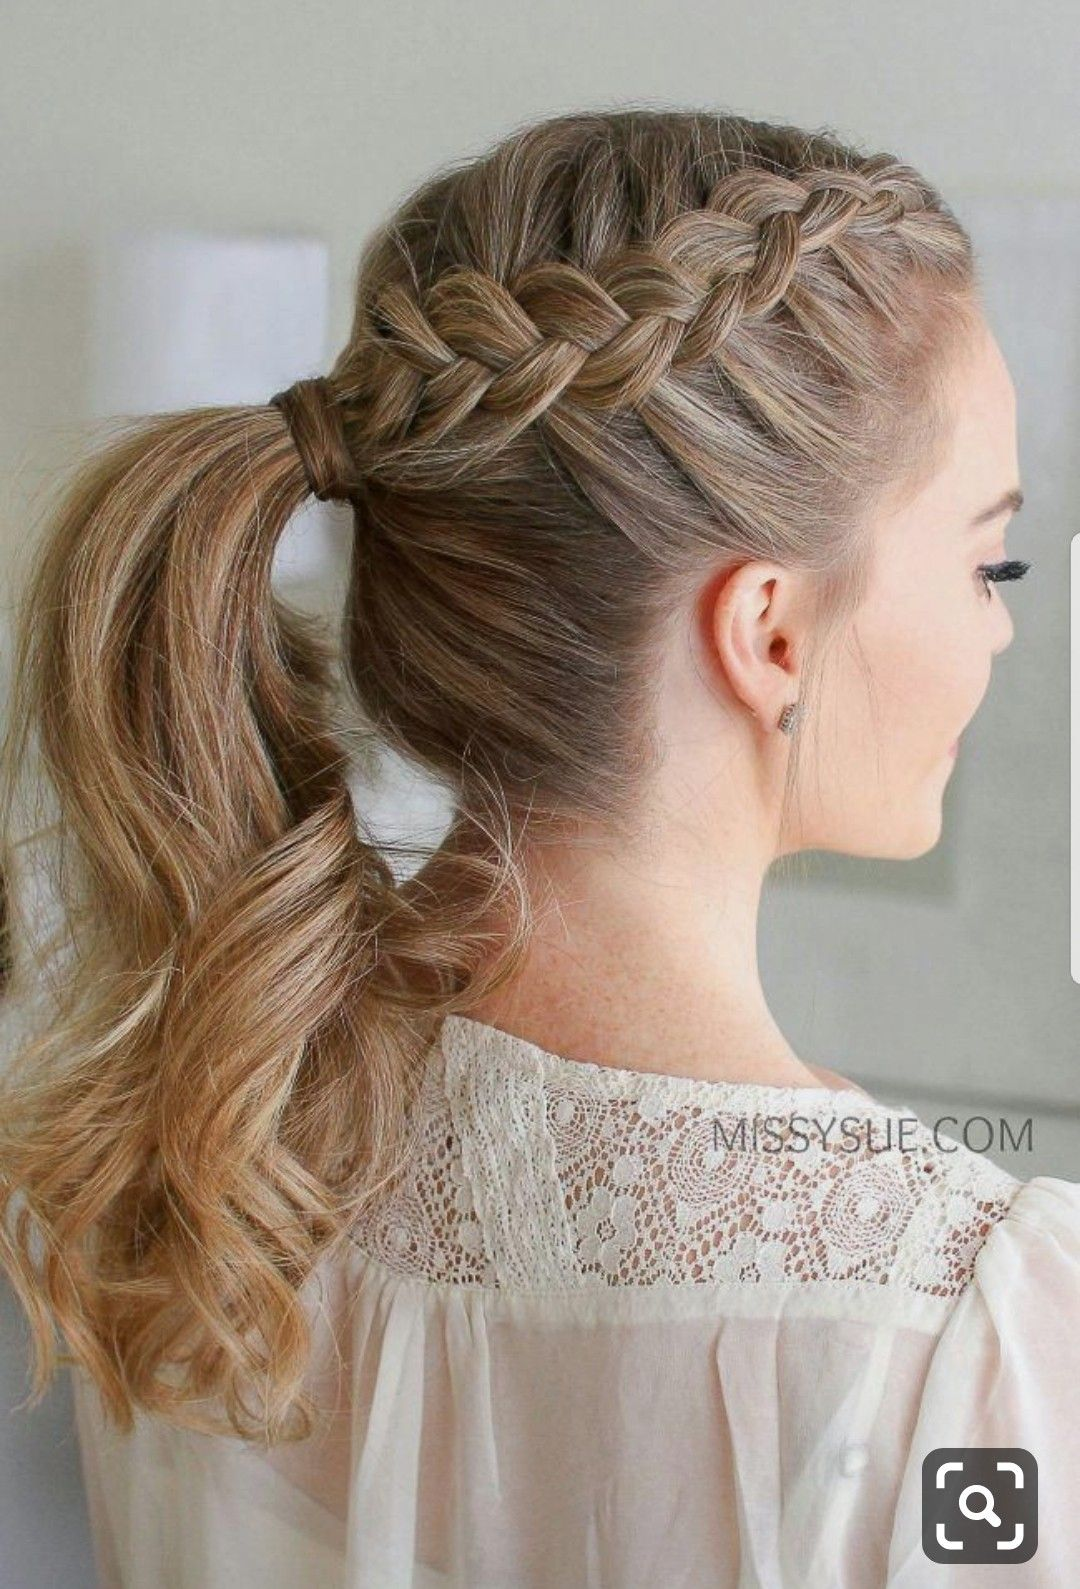 Pin By 15 On Peinados Tumblr Dutch Braid Ponytail Tutorial Hair Styles Braided Ponytail Hairstyles